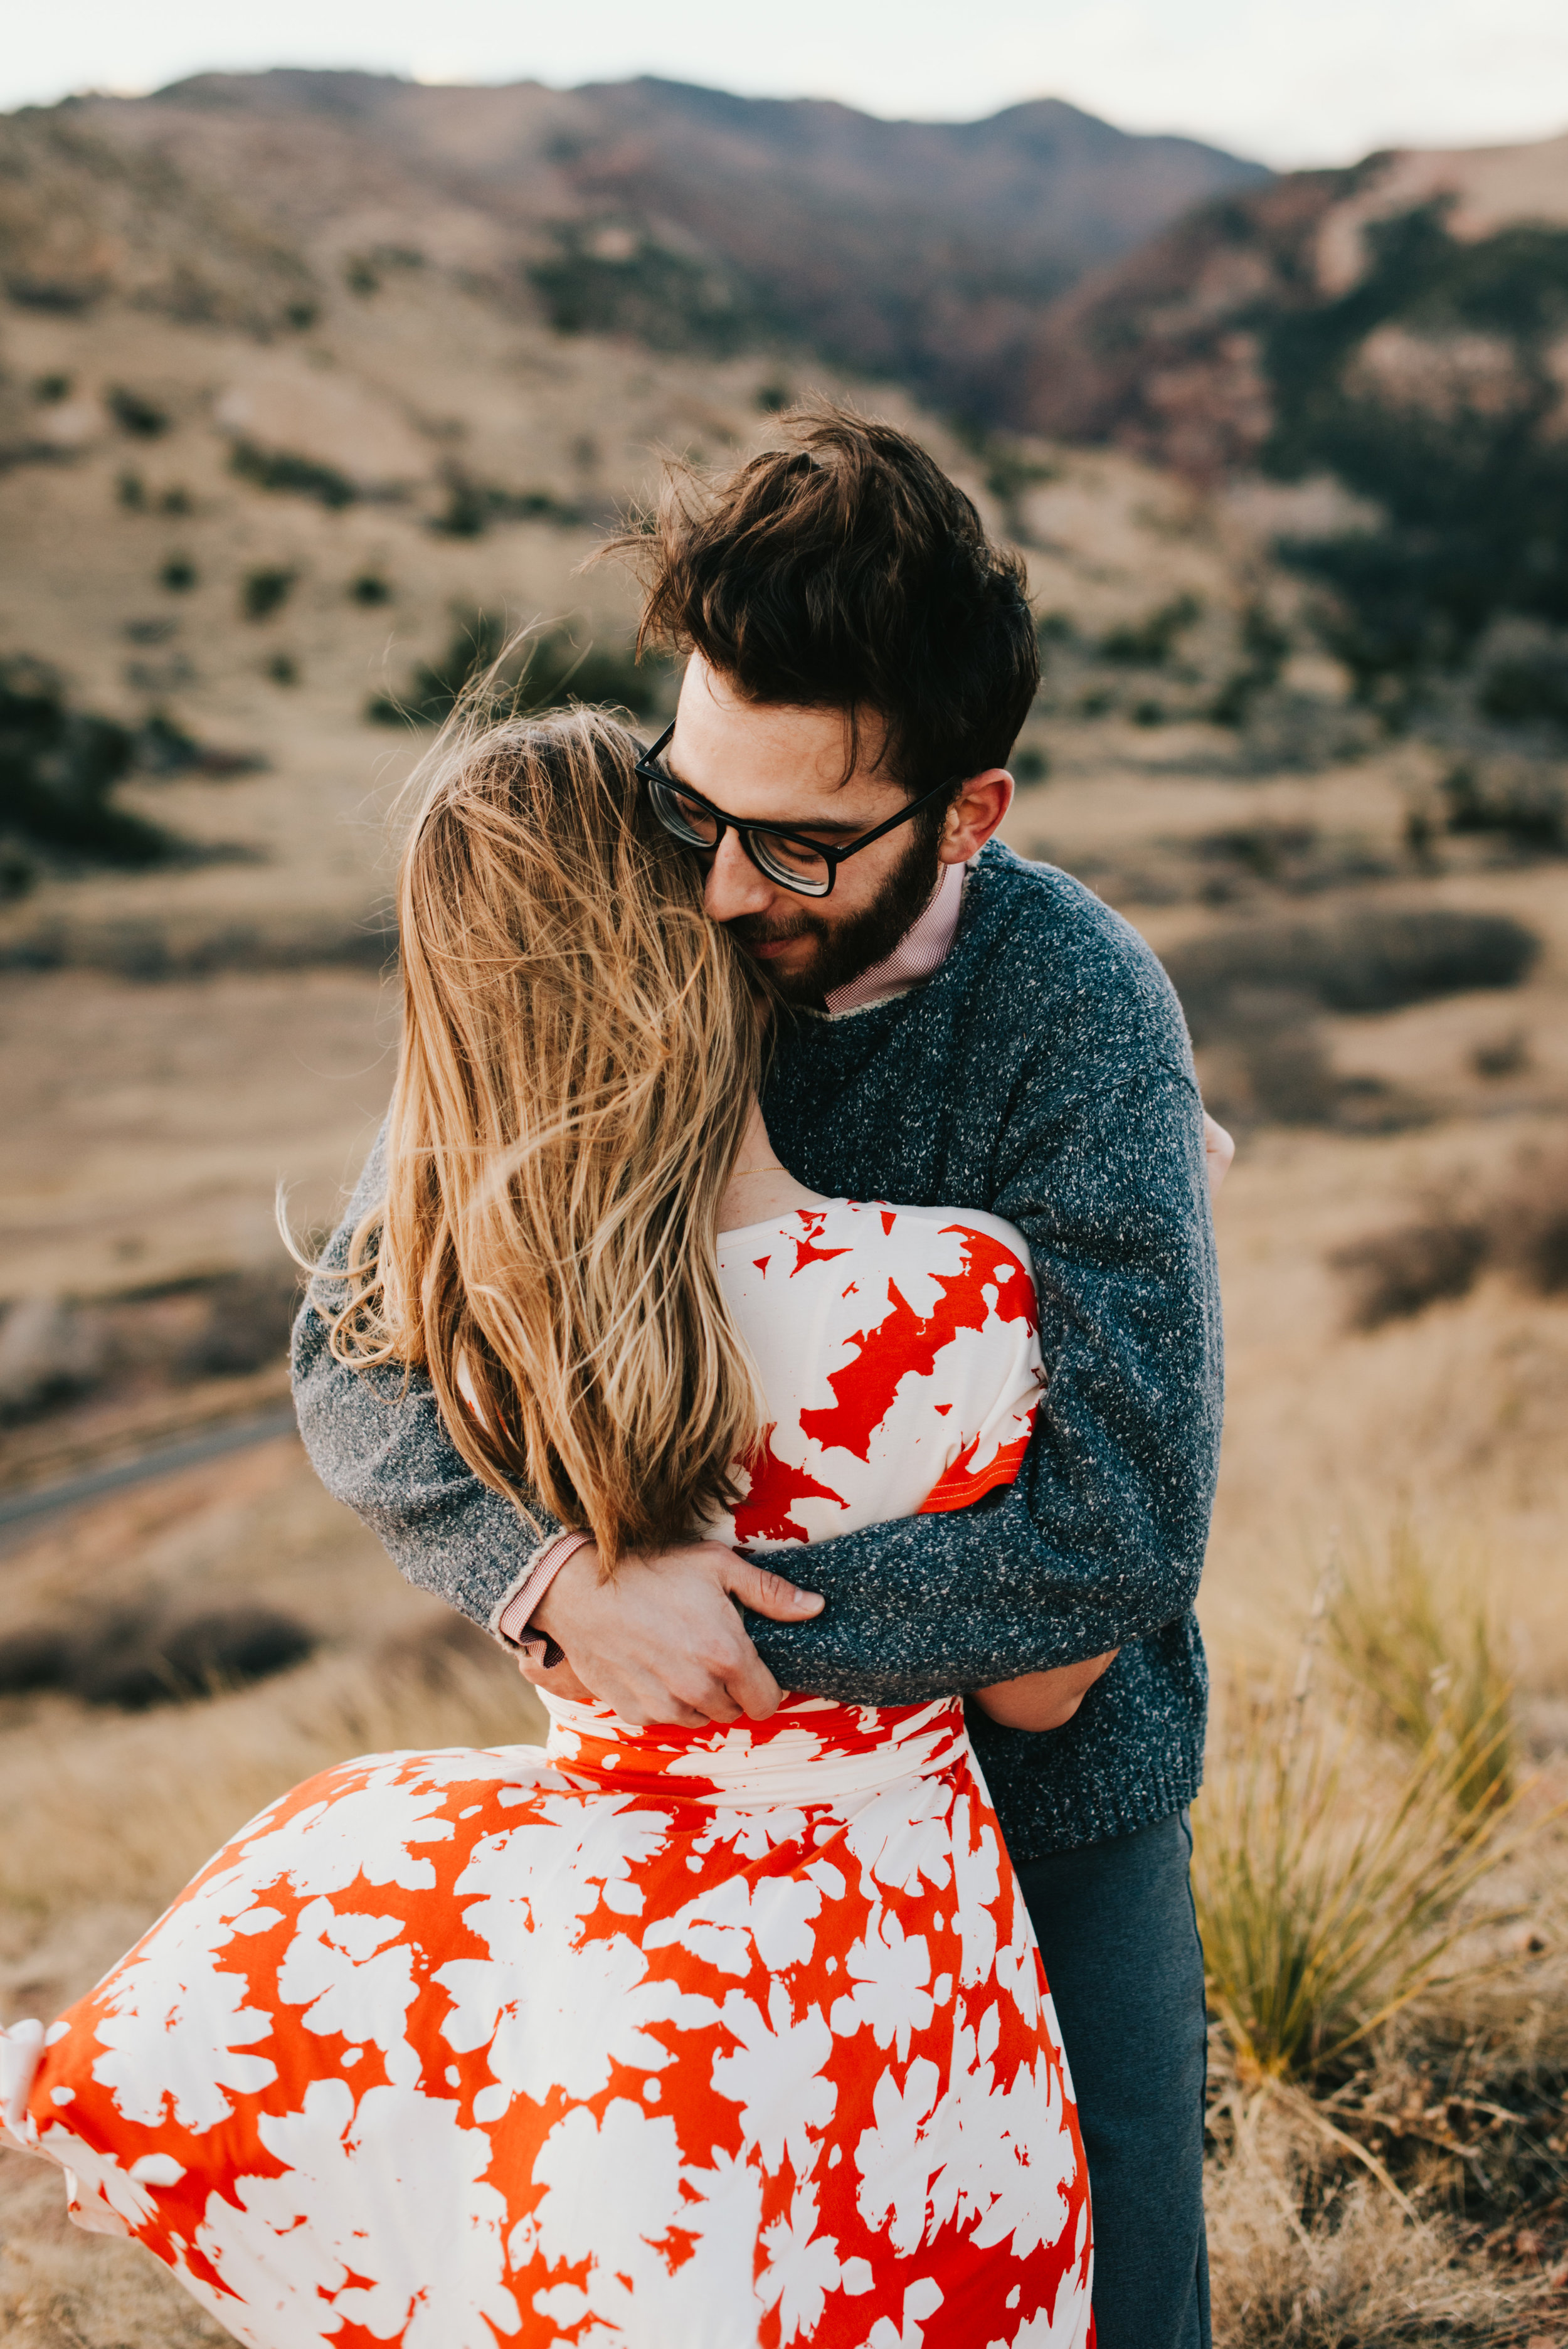 Engagement-session-colorado-engagement-session-Adventurous-Wedding-Photography-Adventurous-Wedding-Photograph-Adventure-Elopement-Photographer-Adventurous-Elopement-Photograph-Adventurous-Elopement-Photographer-Adventurous-Destination-Elopement-Photographer-Destination-Elopement-Photography-Destination-Elopement-Packages-Rocky-Mountain-Elopement-Rocky-Mountain-National-Park-Photographer-RMNP-Wedding-RMNP-Photographer-RMNP-Photography-Colorado-Elopement-Colorado-Elopement-Photographer-Colorado-Elopement-Photography-Iceland-Elopement-Photographer-Iceland-Elopement-Packages-Hiking-Wedding-Hiking-Elopement-Photographer-Mountain-Wedding-Photographer-Mountain-Wedding-Photography-Colorado-Mountain-Wedding-Colorado-Mountain-Elopement-Adventure-wedding-adventure-elopement-Colorado-springs-garden-of-the-gods-engagement-garden-of-the-gods-couples-adventure-session-Teresa-Woodhull-photography-Teresa-Woodhull-photographer-Intimate-wedding-photographer-Intimate-wedding-photography-elopement-photographer-traveling-wedding-photographer-traveling-elopement-photographer-Adventure-elopement-photographer-Adventure-wedding-photographer-Destination-wedding-Destination-elopement-Destination-wedding-photography-Destination-wedding-photographer-Teresa-Woodhull-Intimate-Wedding-Photography-Teresa-Woodhull-Intimate-Wedding-Photographer-Teresa-Woodhull-Elopement-Photography-Teresa-Woodhull-Elopement-Photographer-Elopement-Photography-Intimate-Elopement-Photographer-Intimate-Elopement-Photography-Elopement-Wedding-Weddings-Elope-Elopements-Intimate-Weddings-Adventure-Weddings-Adventure-Wedding-Photograph-Adventure-Wedding-Photograph-ted-hugging-rachel-couple-hugging-passionately